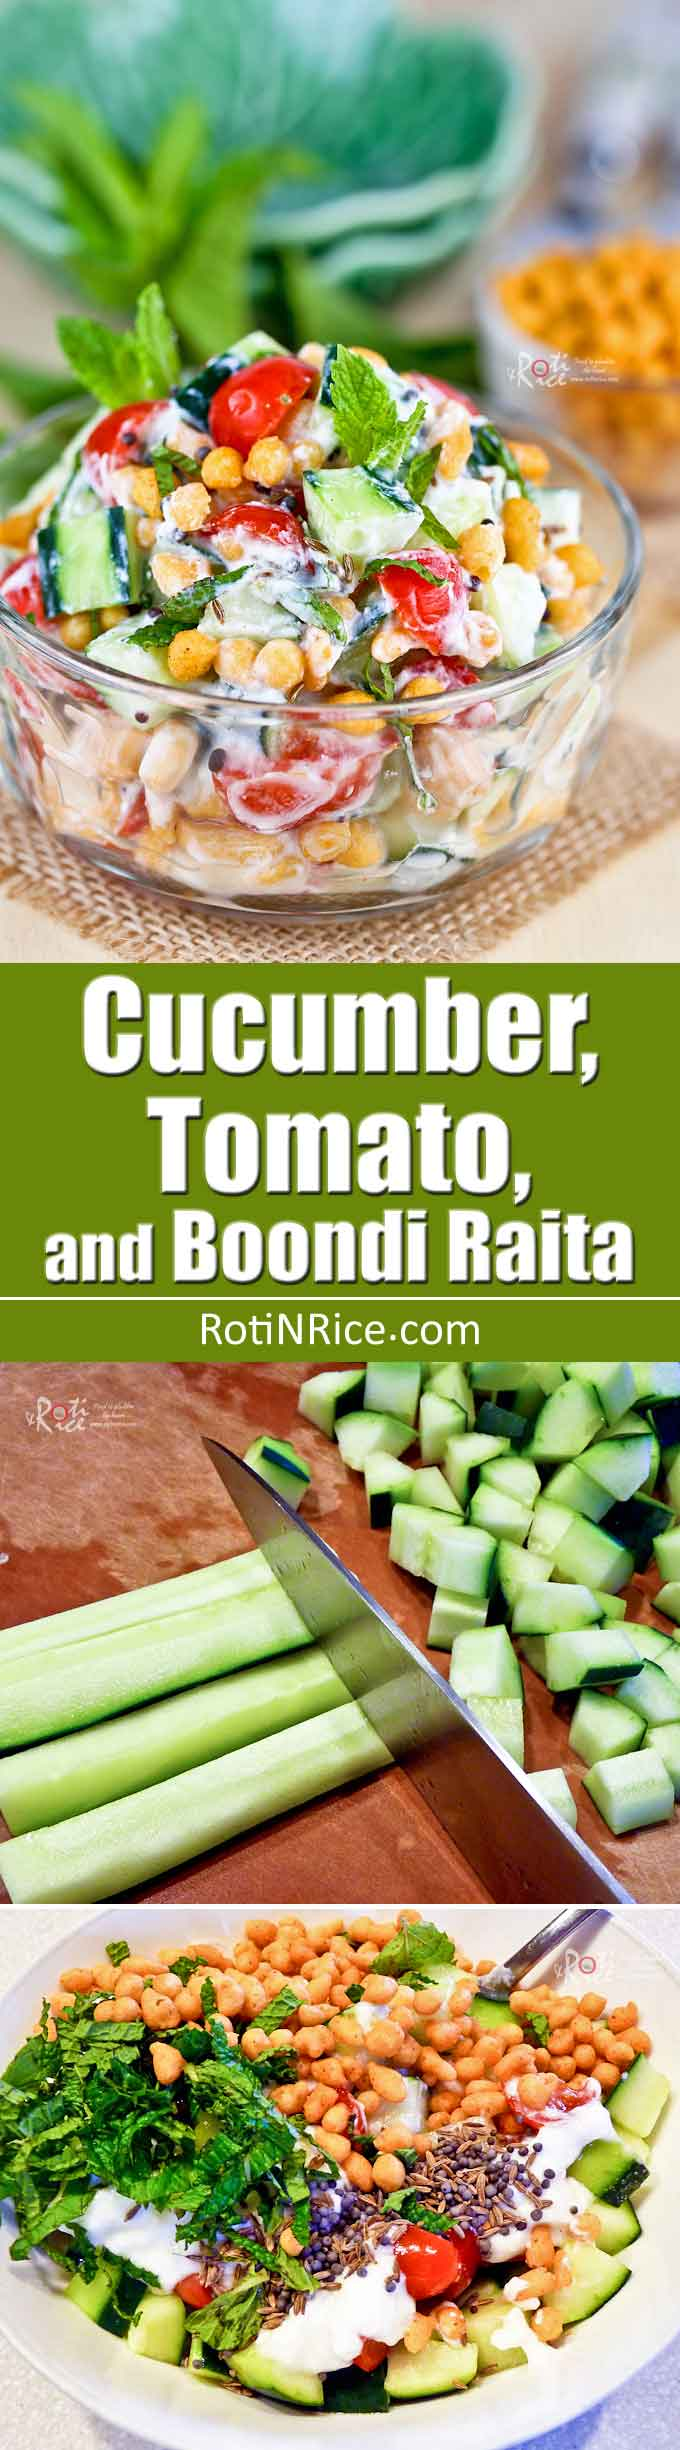 This cool tasty Cucumber, Tomato, and Boondi Raita is delicious with curries or grilled meats. The boondi (gram flour puffs) provide a nice crunch. | RotiNRice.com